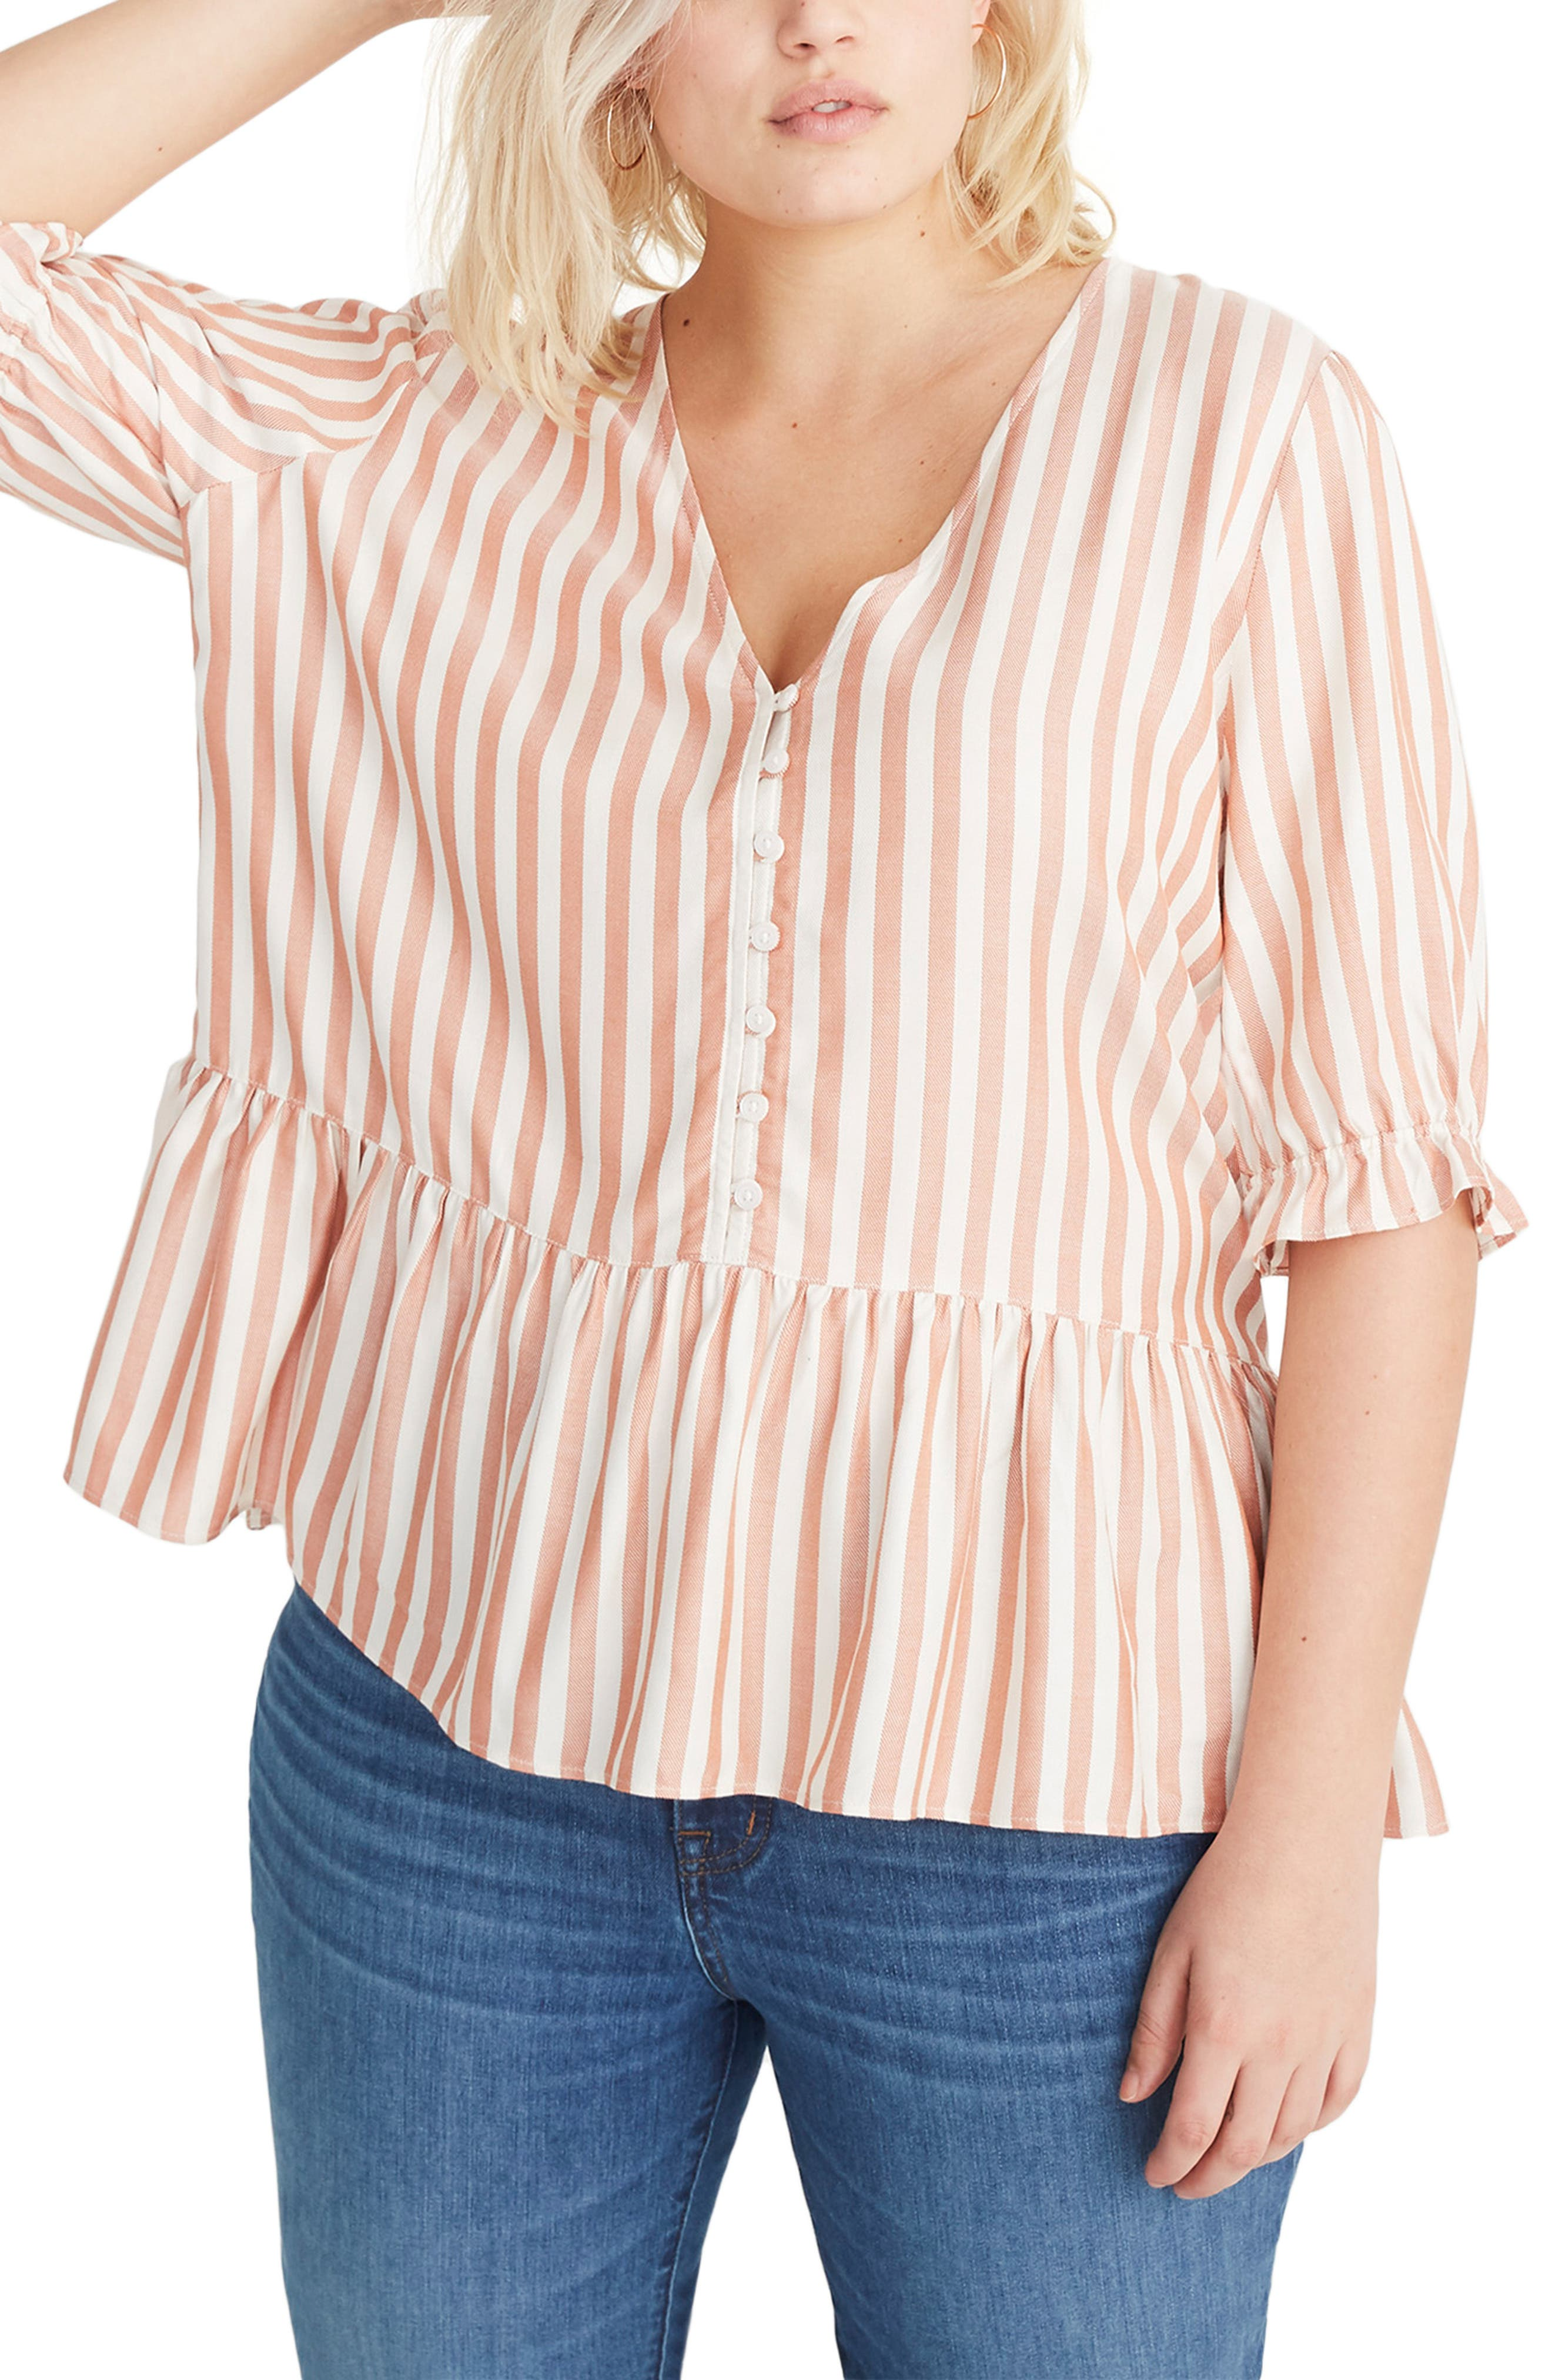 MADEWELL,                             Courtyard Ruffle Hem Top,                             Alternate thumbnail 2, color,                             STRIPE